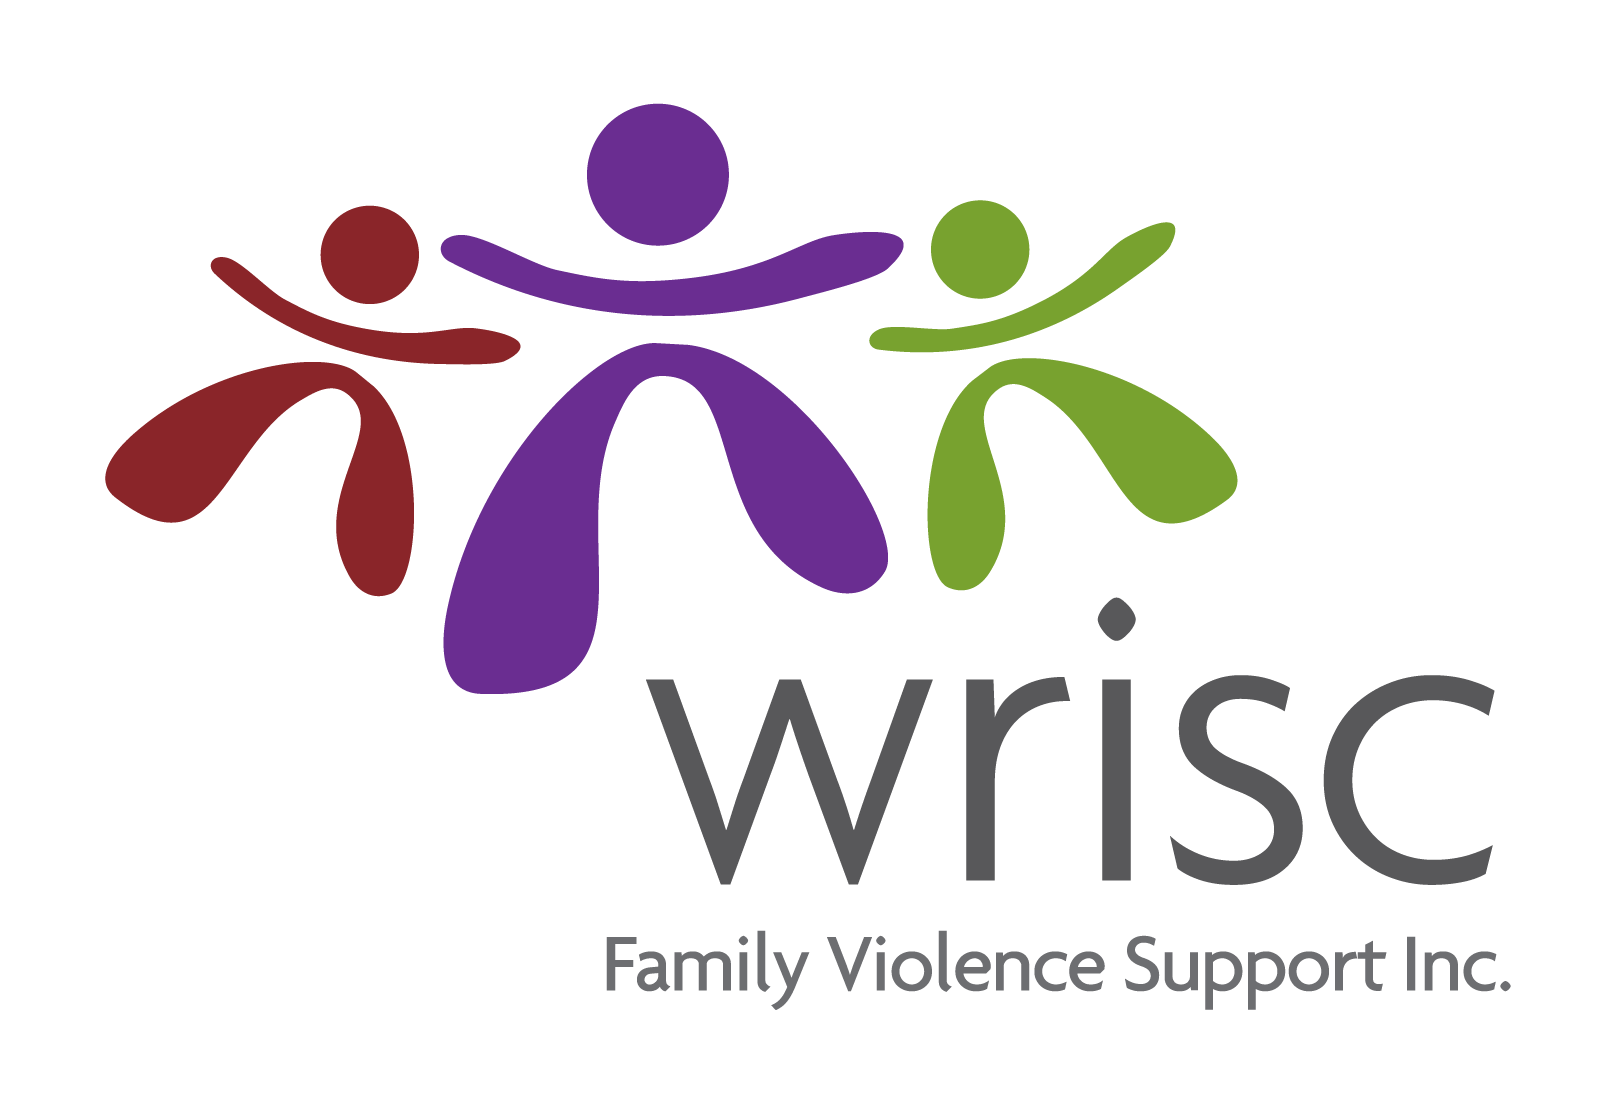 WRISC Family Violence Support Inc.